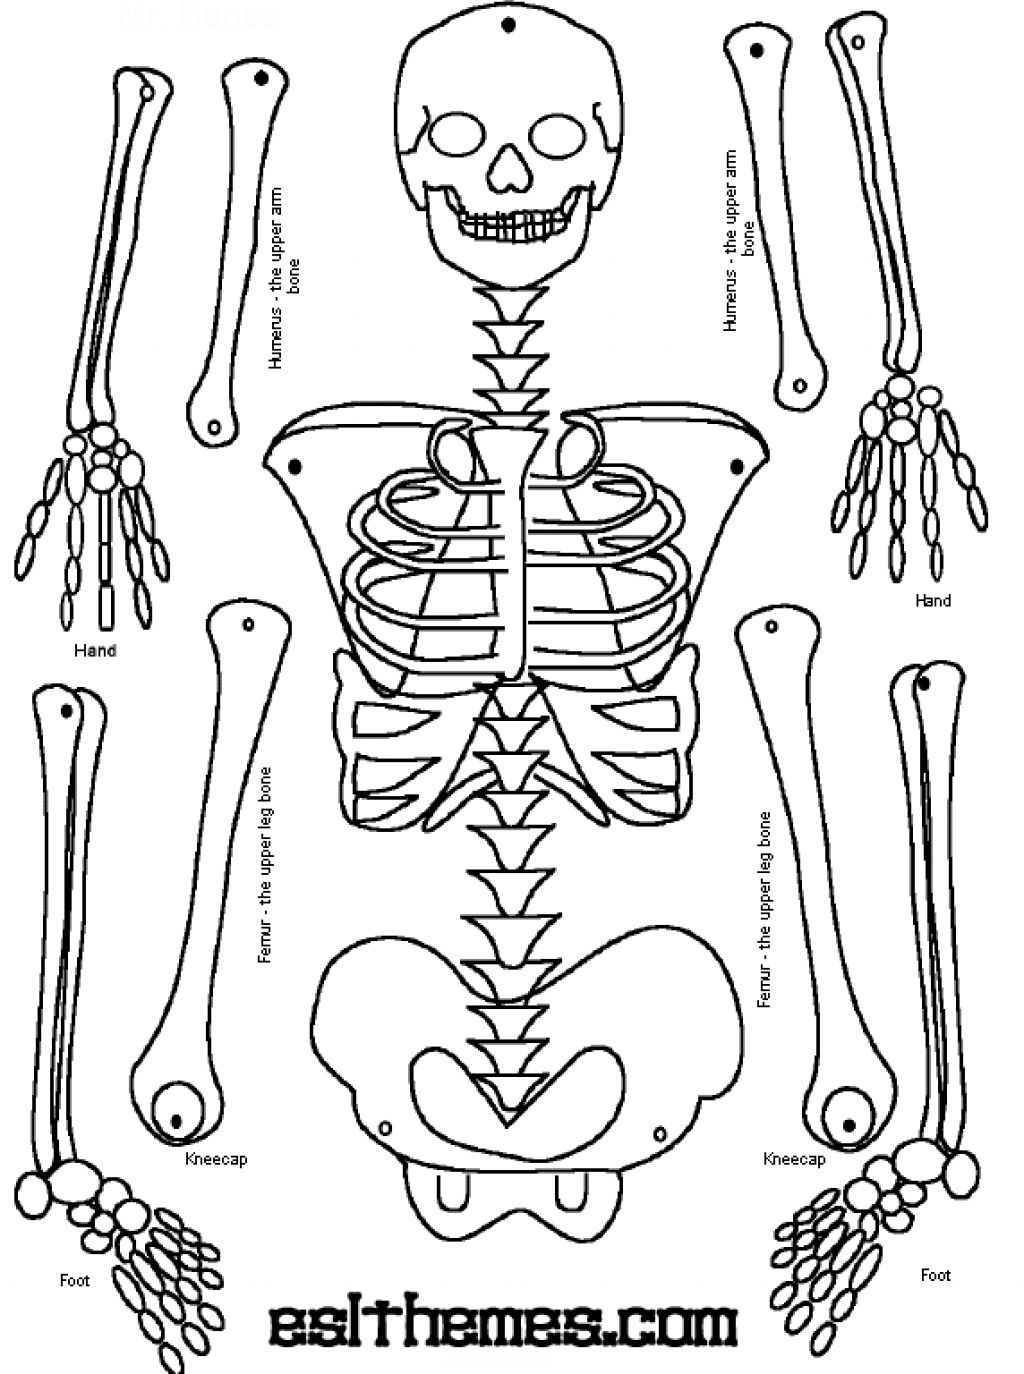 graphic relating to Printable Human Skeleton named Printable Skeleton Puzzle Printable Crossword Puzzles